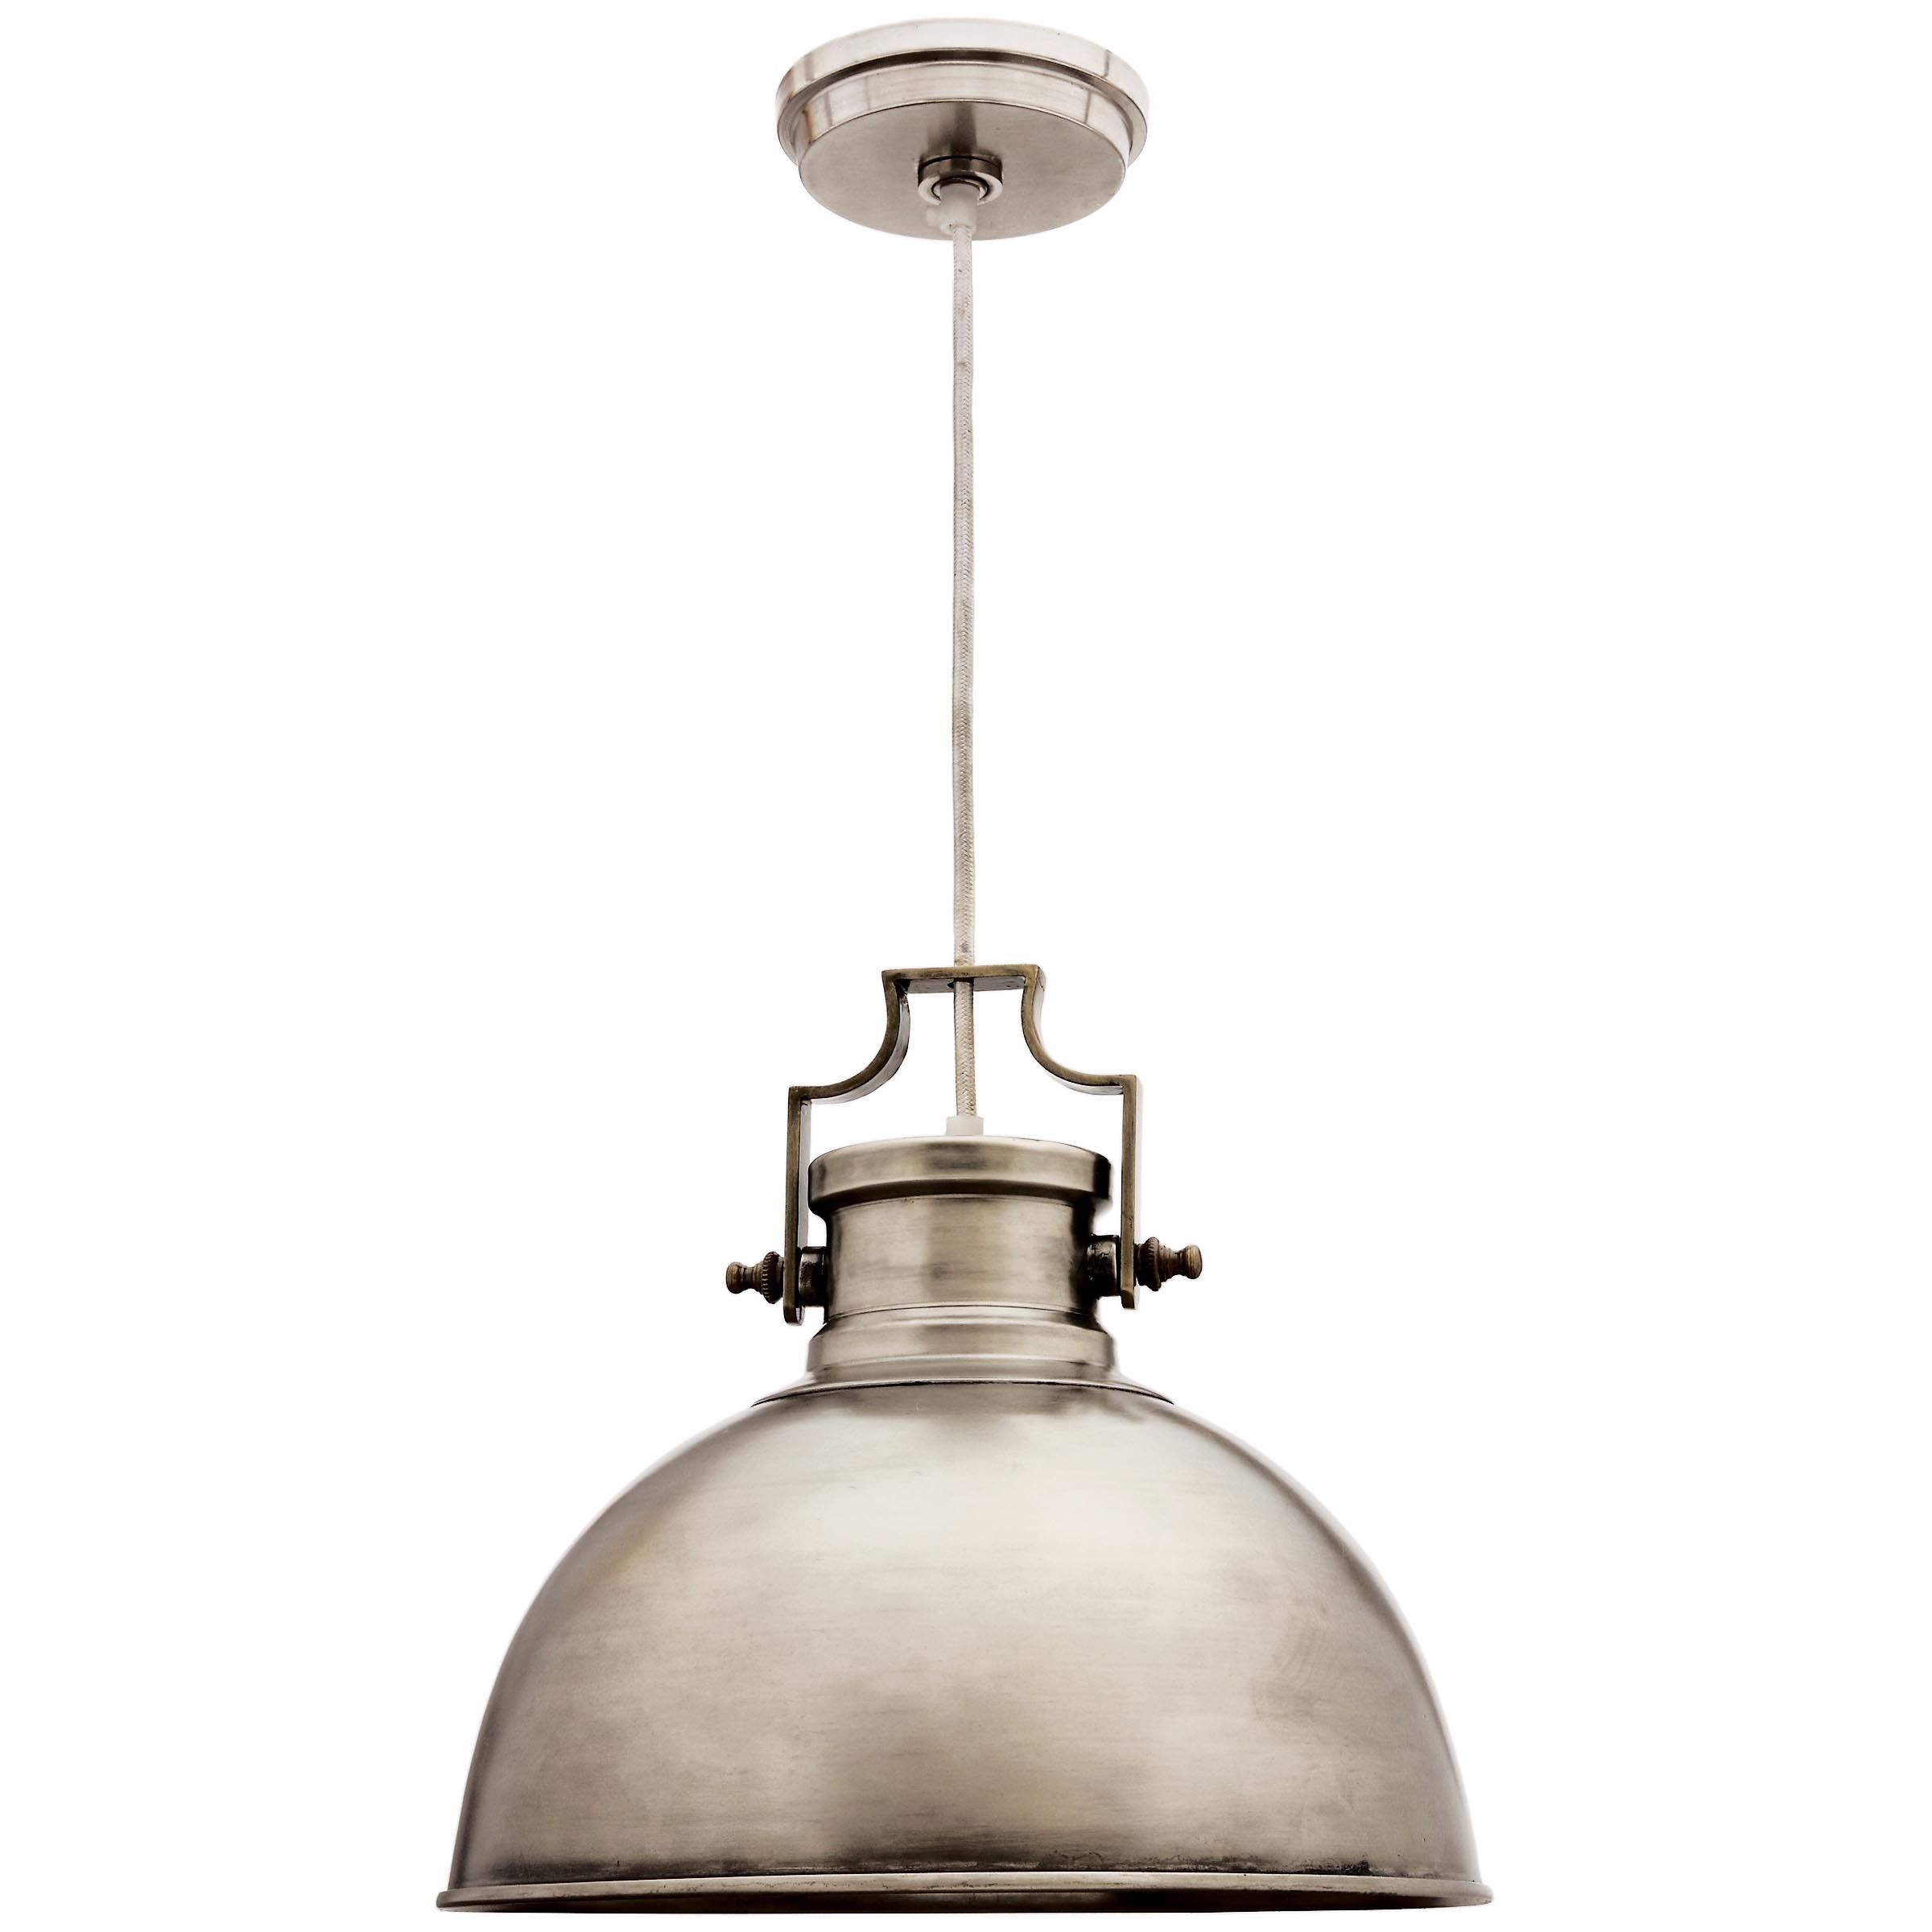 Nautically Inspired, Camden Is A Stunningly Designed Pendant inside Mueller 1-Light Single Dome Pendants (Image 20 of 30)